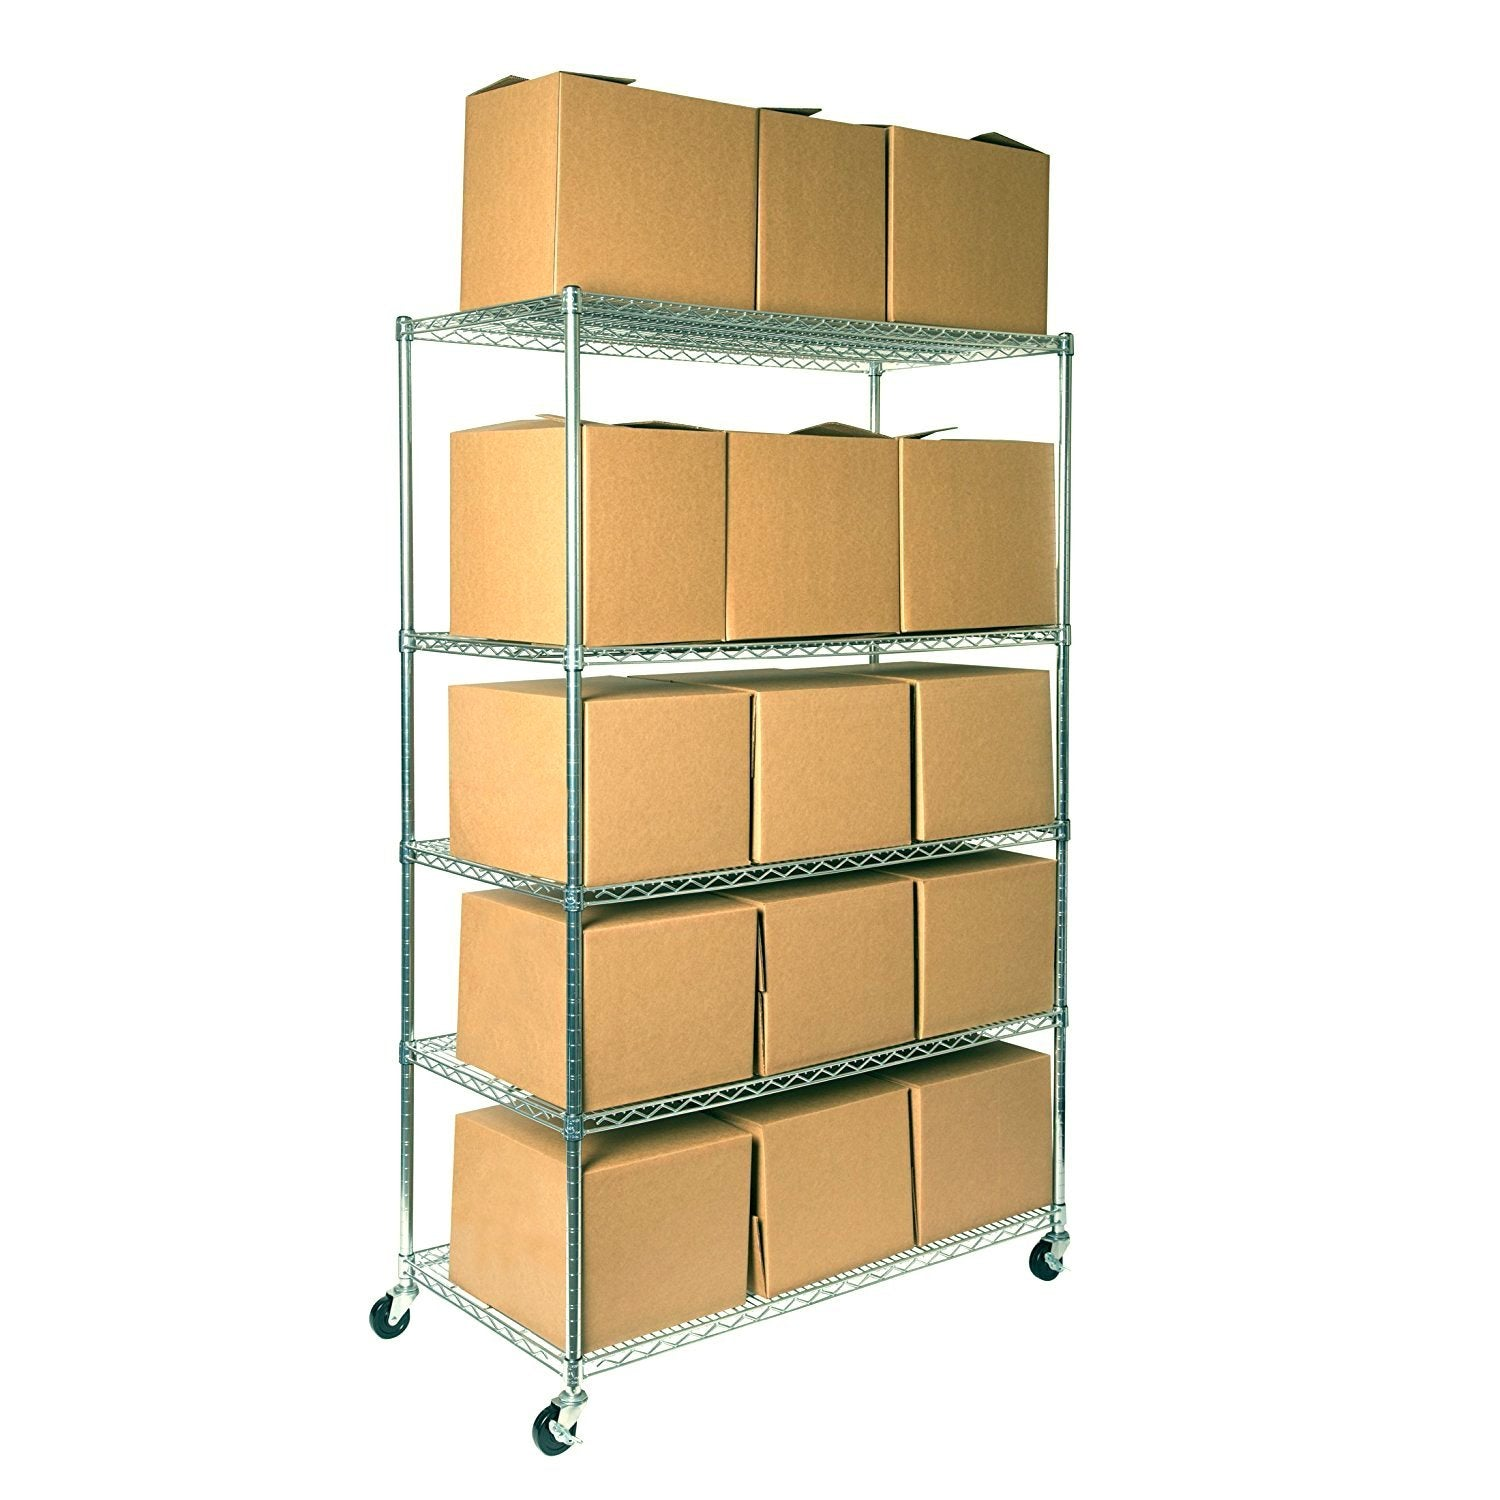 "Seville Classics UltraDurable Commercial-Grade 5-Tier NSF-Certified Steel Wire Shelving with Wheels 48"" W x 24"" D x 72"" H Silver"